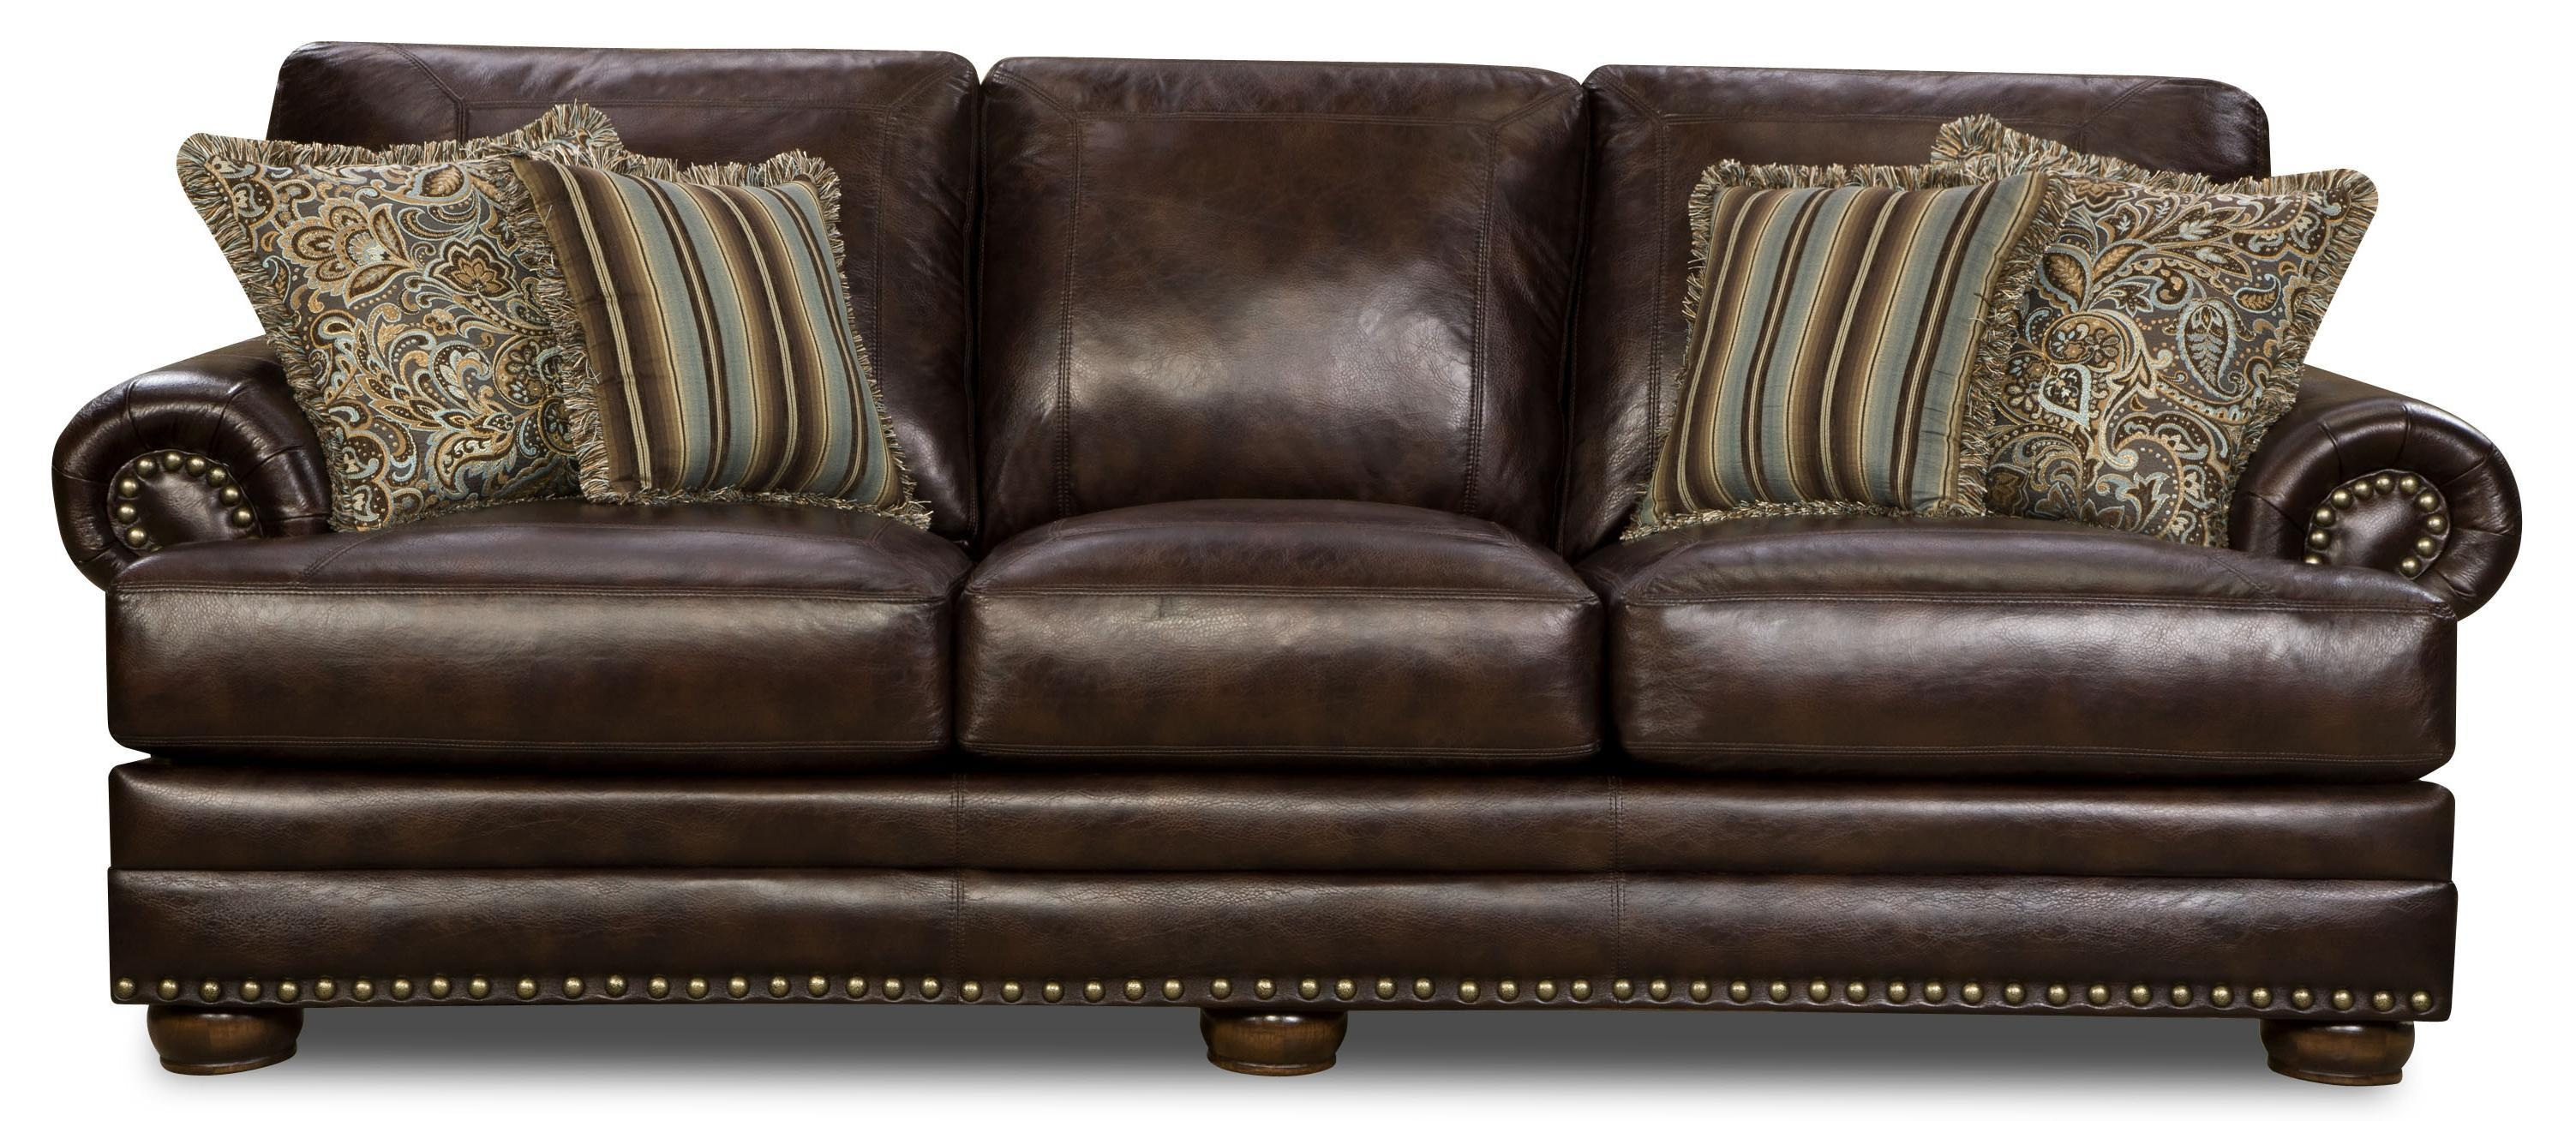 Corinthian Leather Sofa Corinthian Alexander Leather Reclining With Corinthian Sofas (Image 11 of 20)